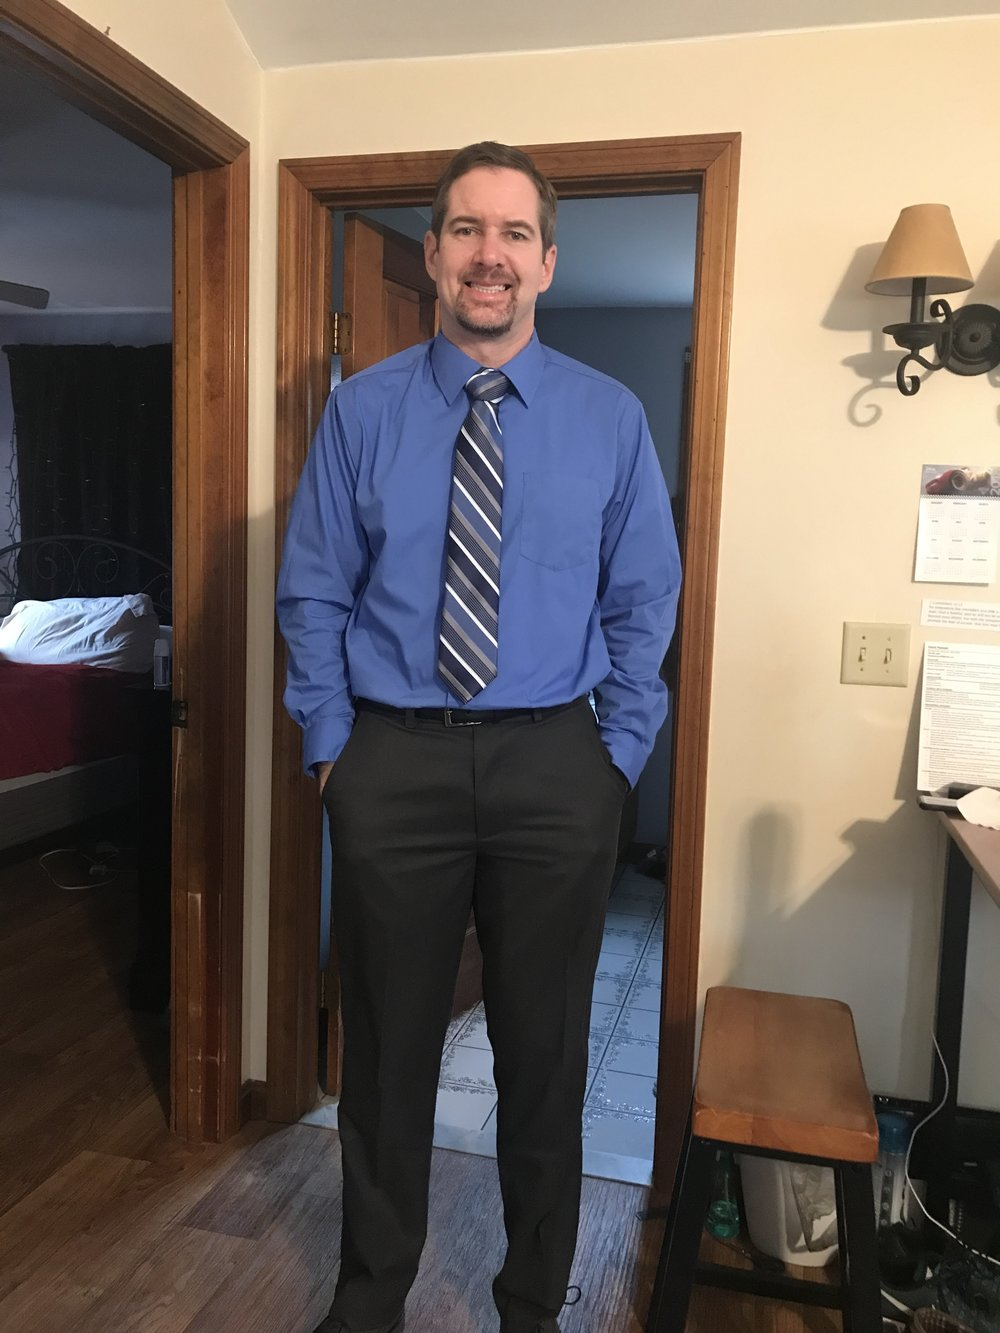 David on his way to an interview